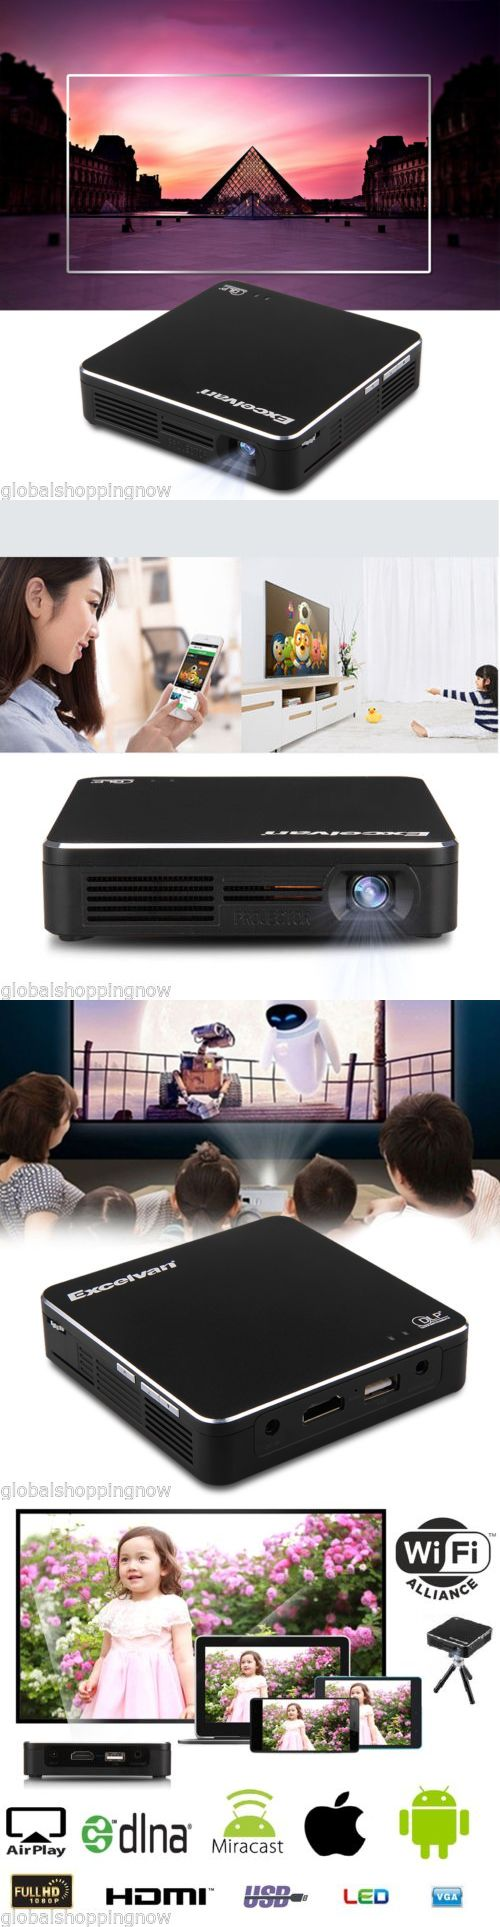 Home Theater Projectors: Mini Dlp Wifi Led 3200Lumens Projector Hd 1080P Hdmi Usb Miracast Airplay+Tripod -> BUY IT NOW ONLY: $109.99 on eBay!